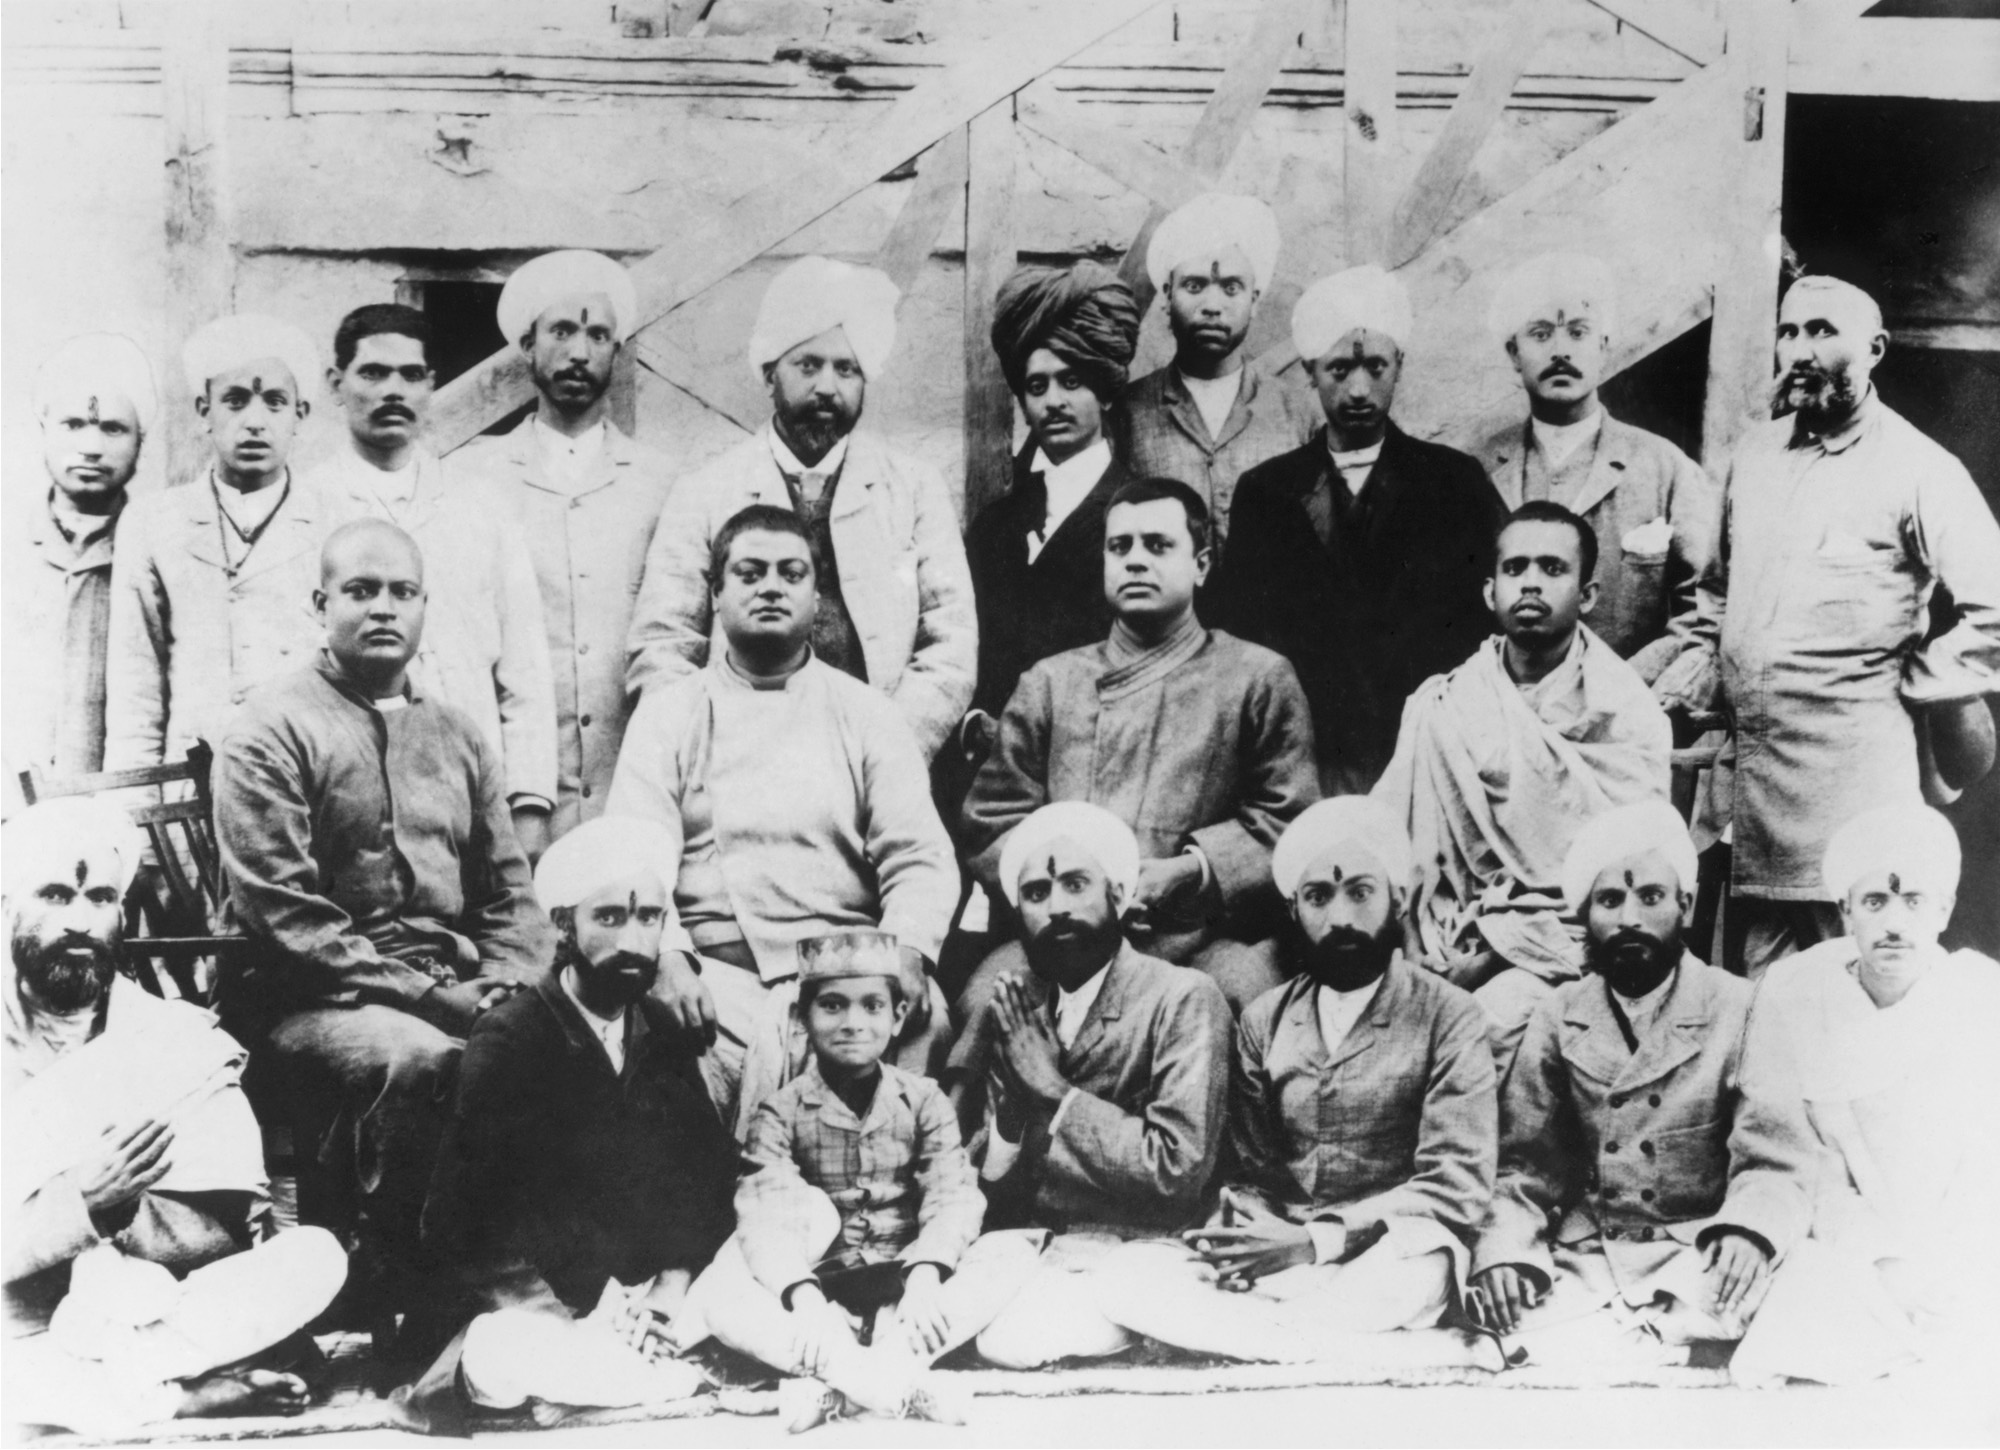 (#66) Kashmir, 1897.  Sitting on chairs  ( from  L): Swami Sadananda, Swamiji, Swami Niranjanananda, Swami Dhirananda.